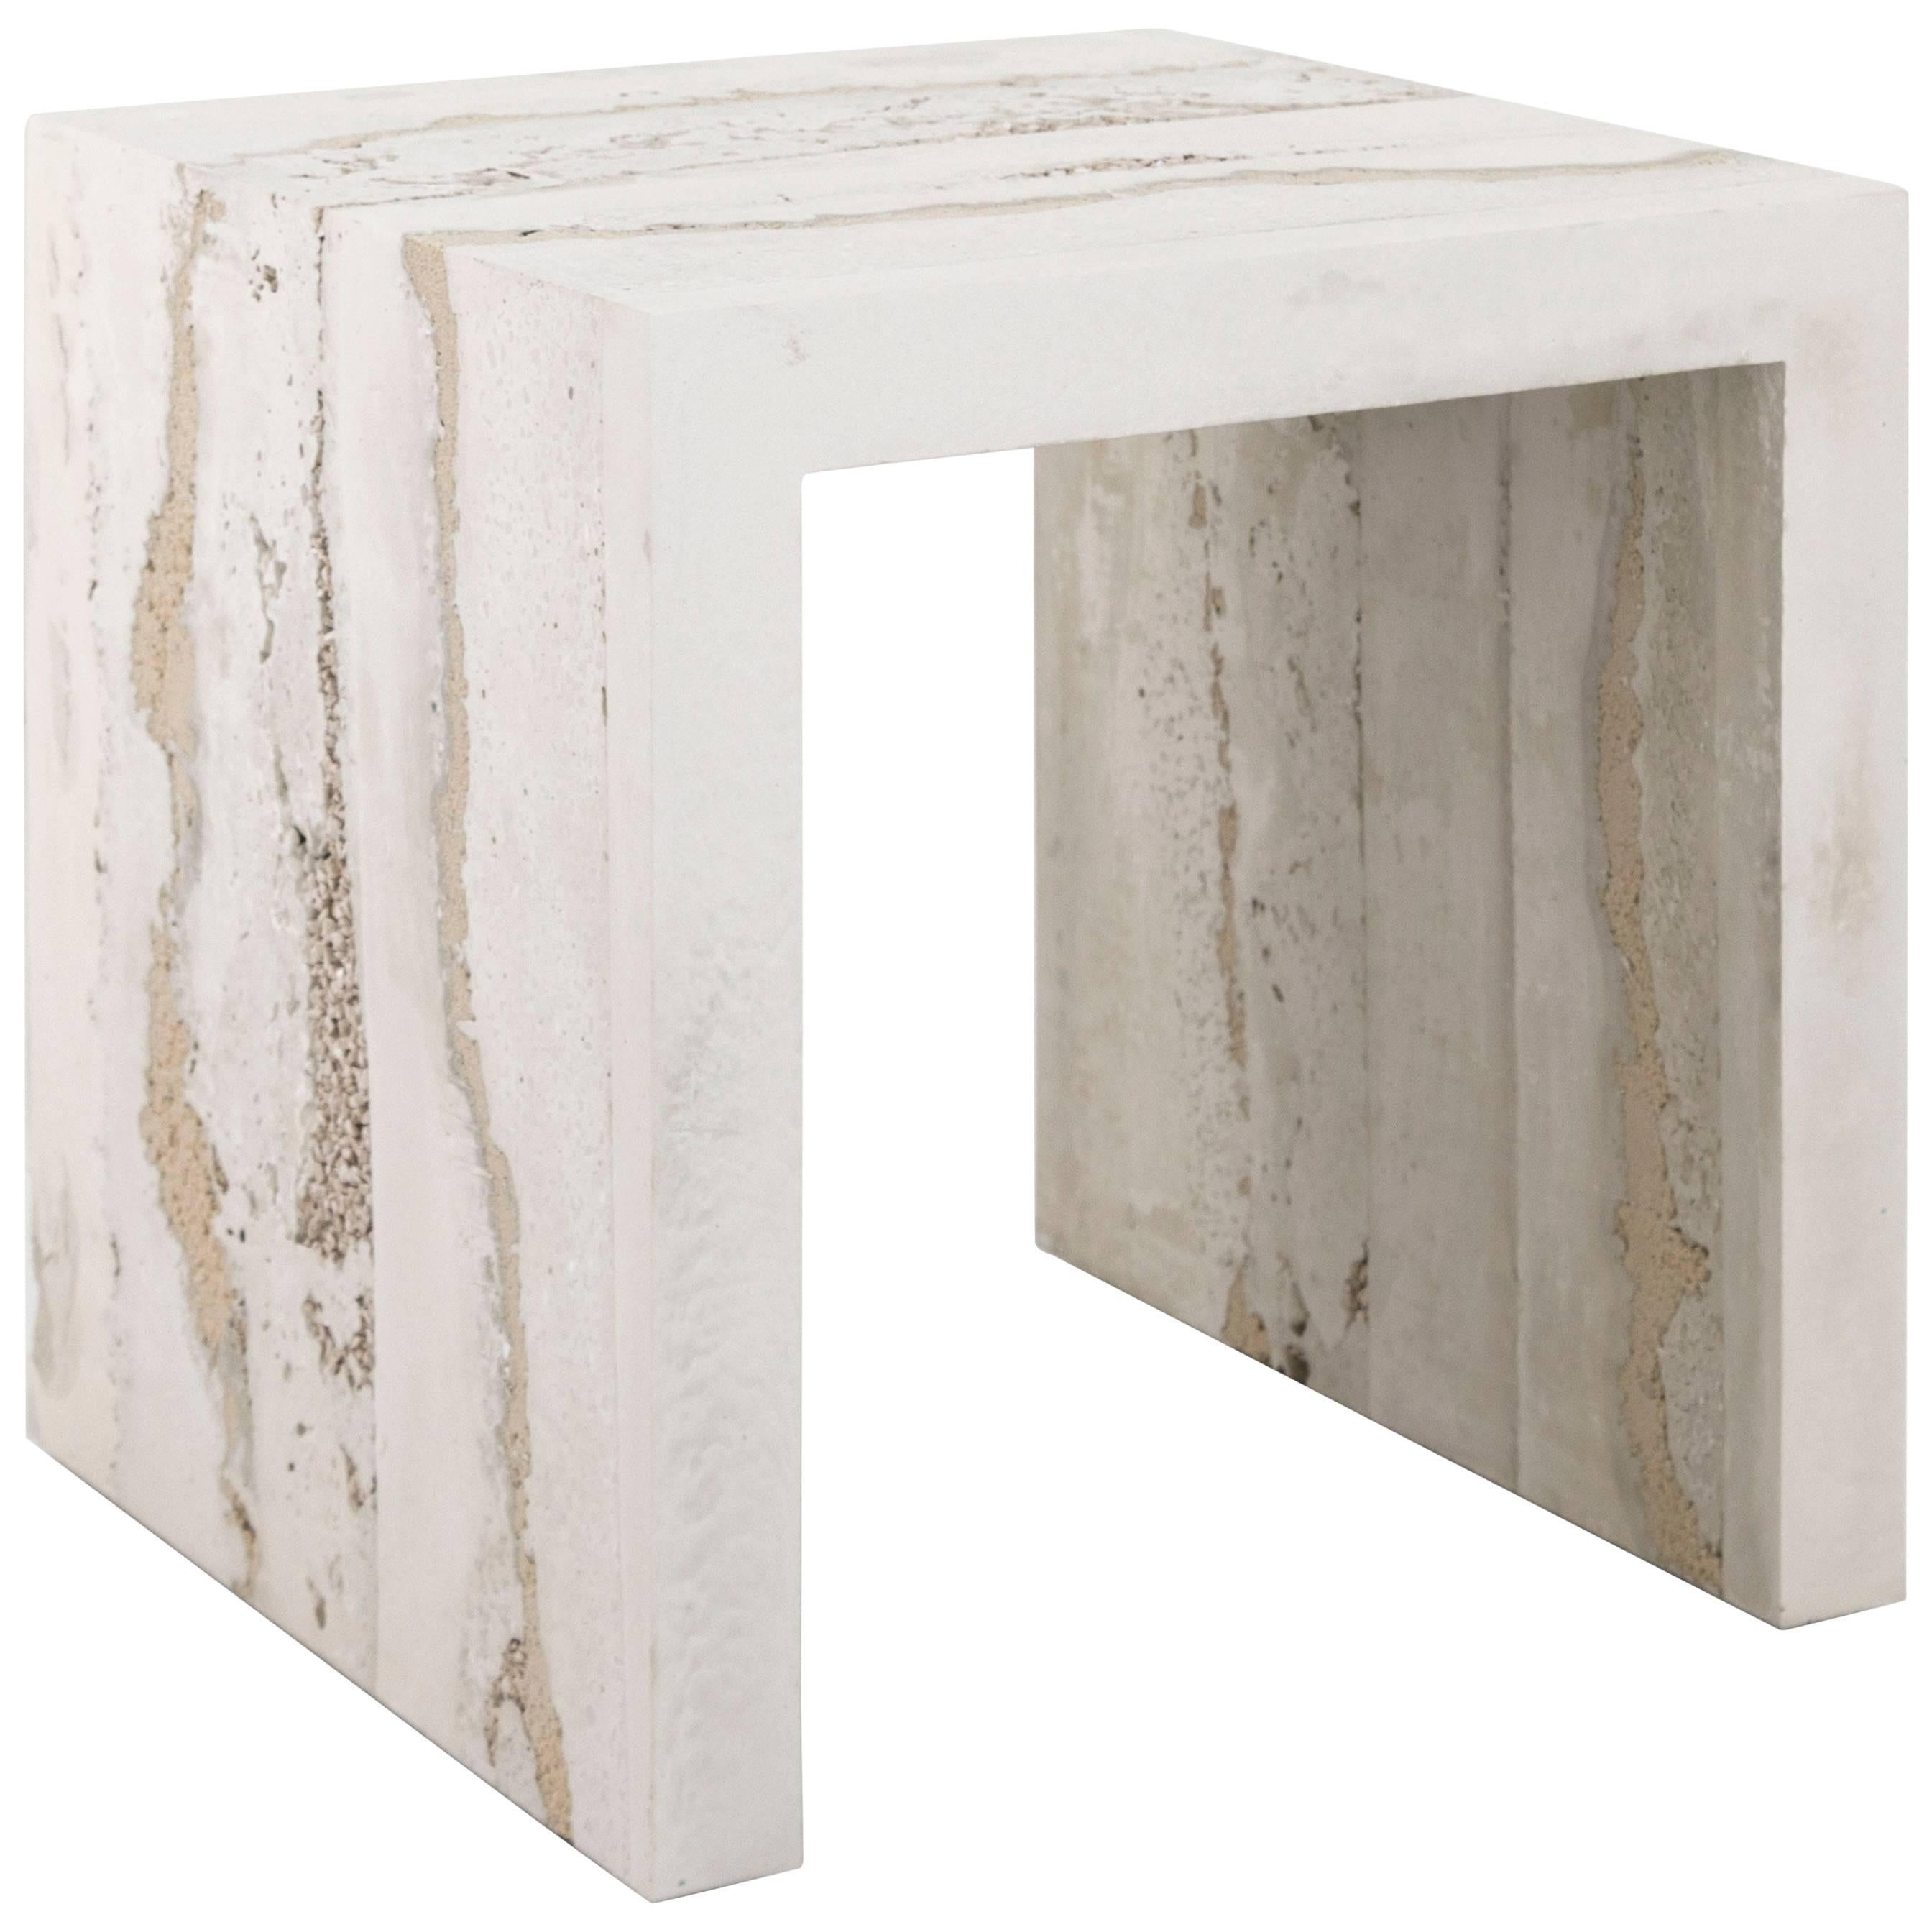 Merveilleux Lithic Side Table, Cream Cement, Porcelain And Tan Sand By Fernando  Mastrangelo